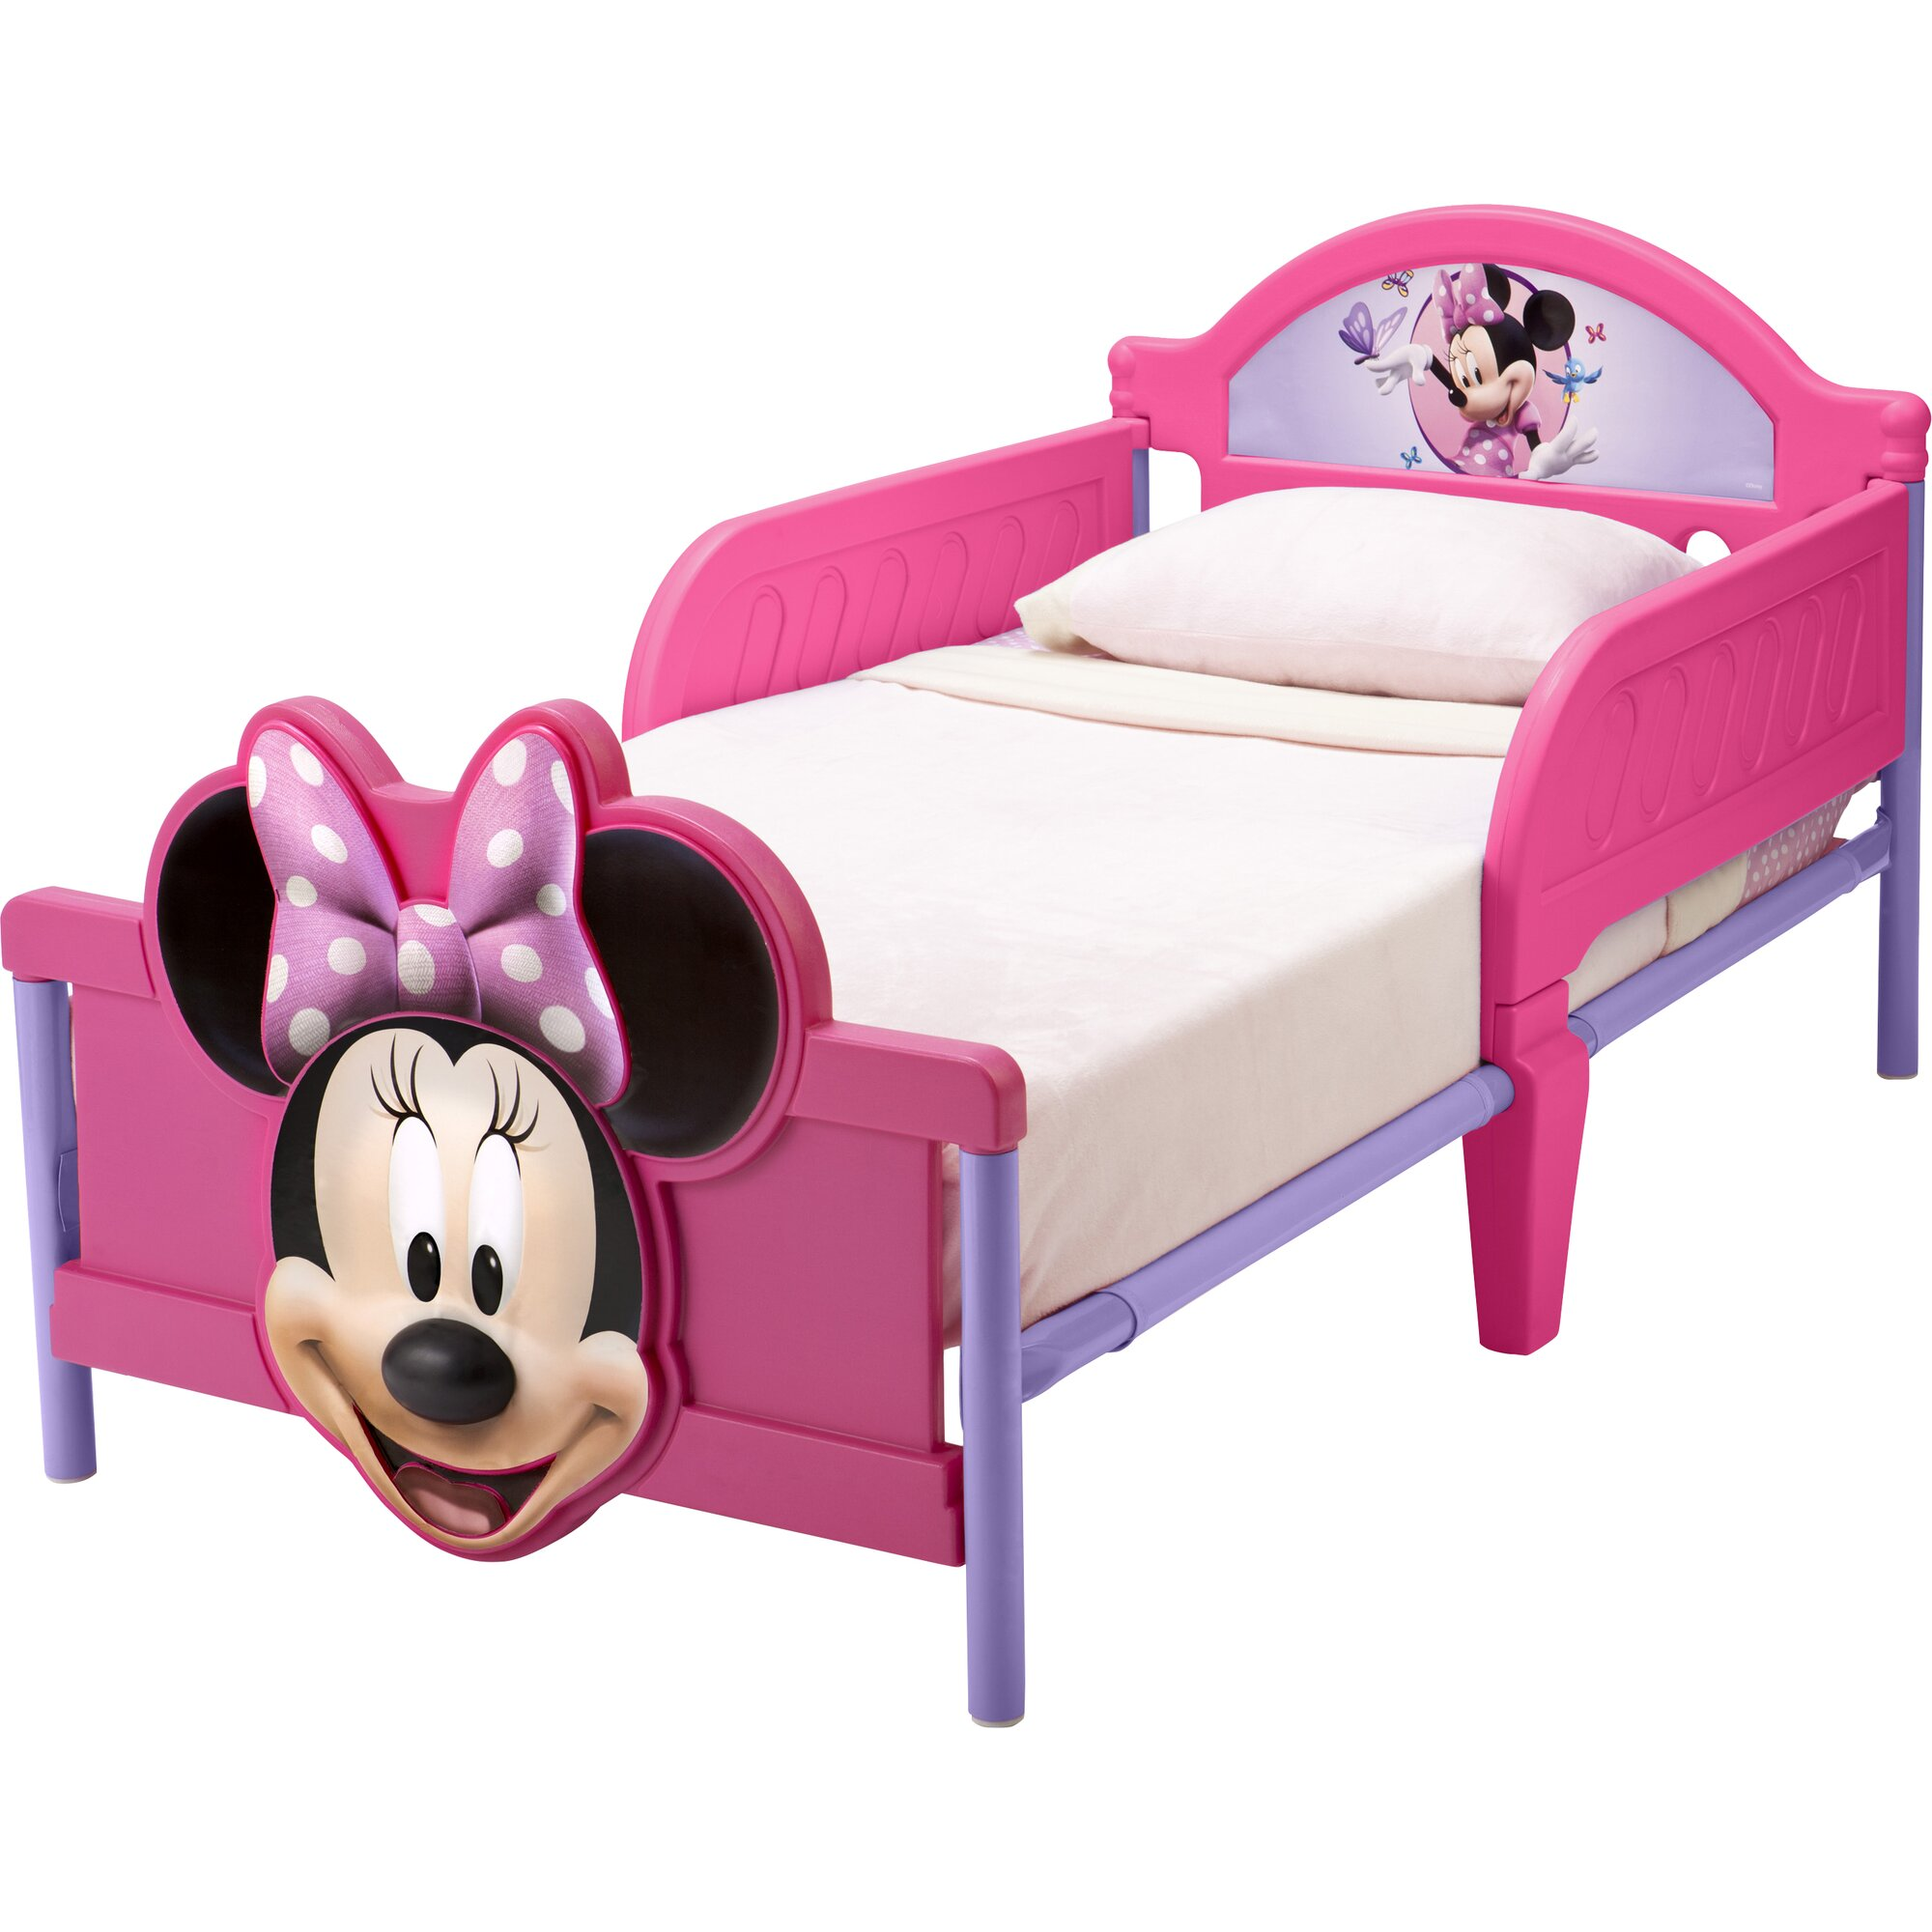 Delta Children Disney Minnie Mouse 3D Convertible Toddler Bed